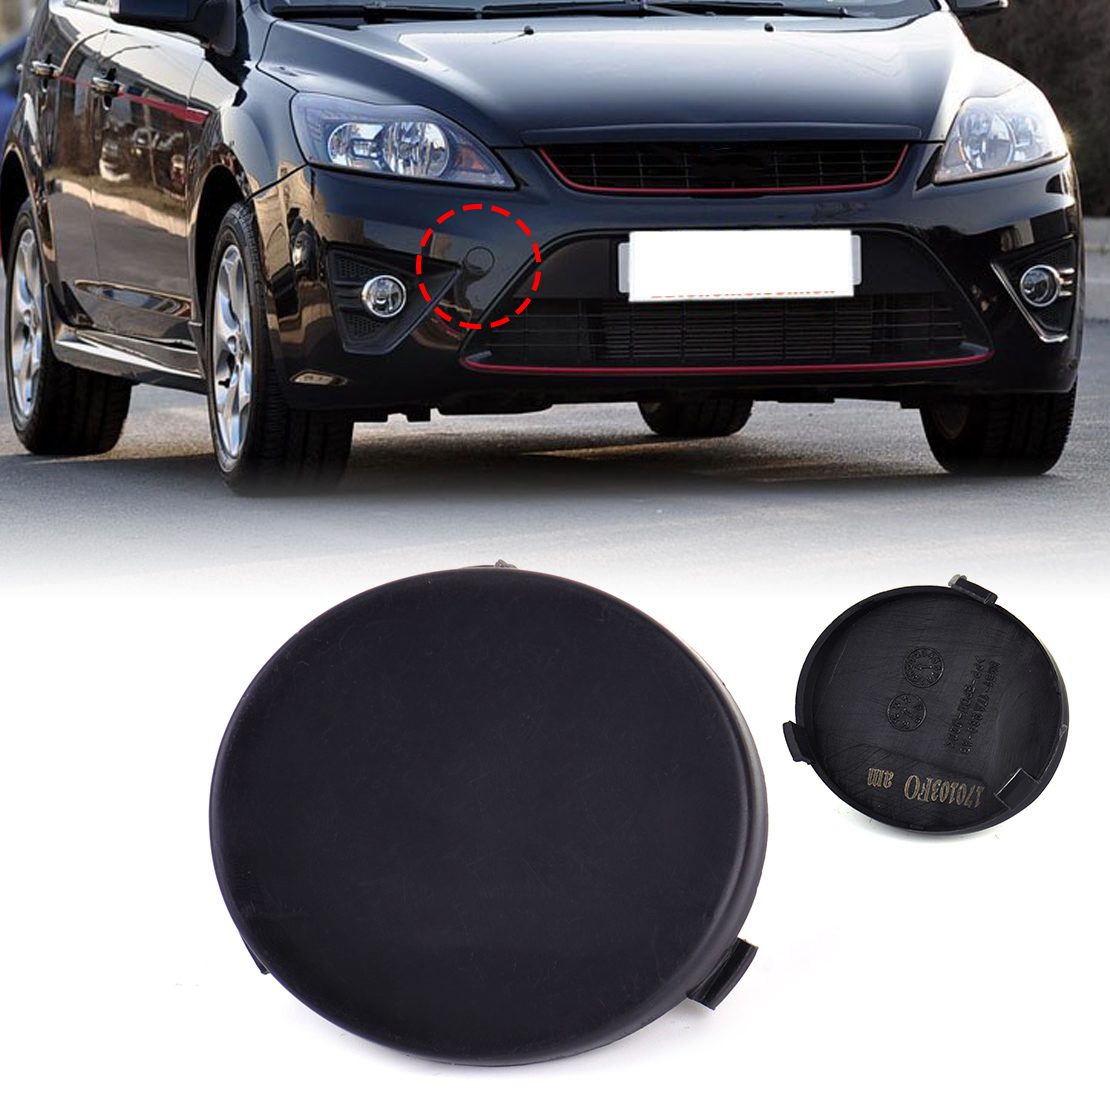 beler New Black Front Bumper Tow Hook Cover Cap 8M51-17A989-AB 8M5117A989AB fit for <font><b>Ford</b></font> <font><b>Focus</b></font> 2009 <font><b>2010</b></font> 2011 Wholesale Price image